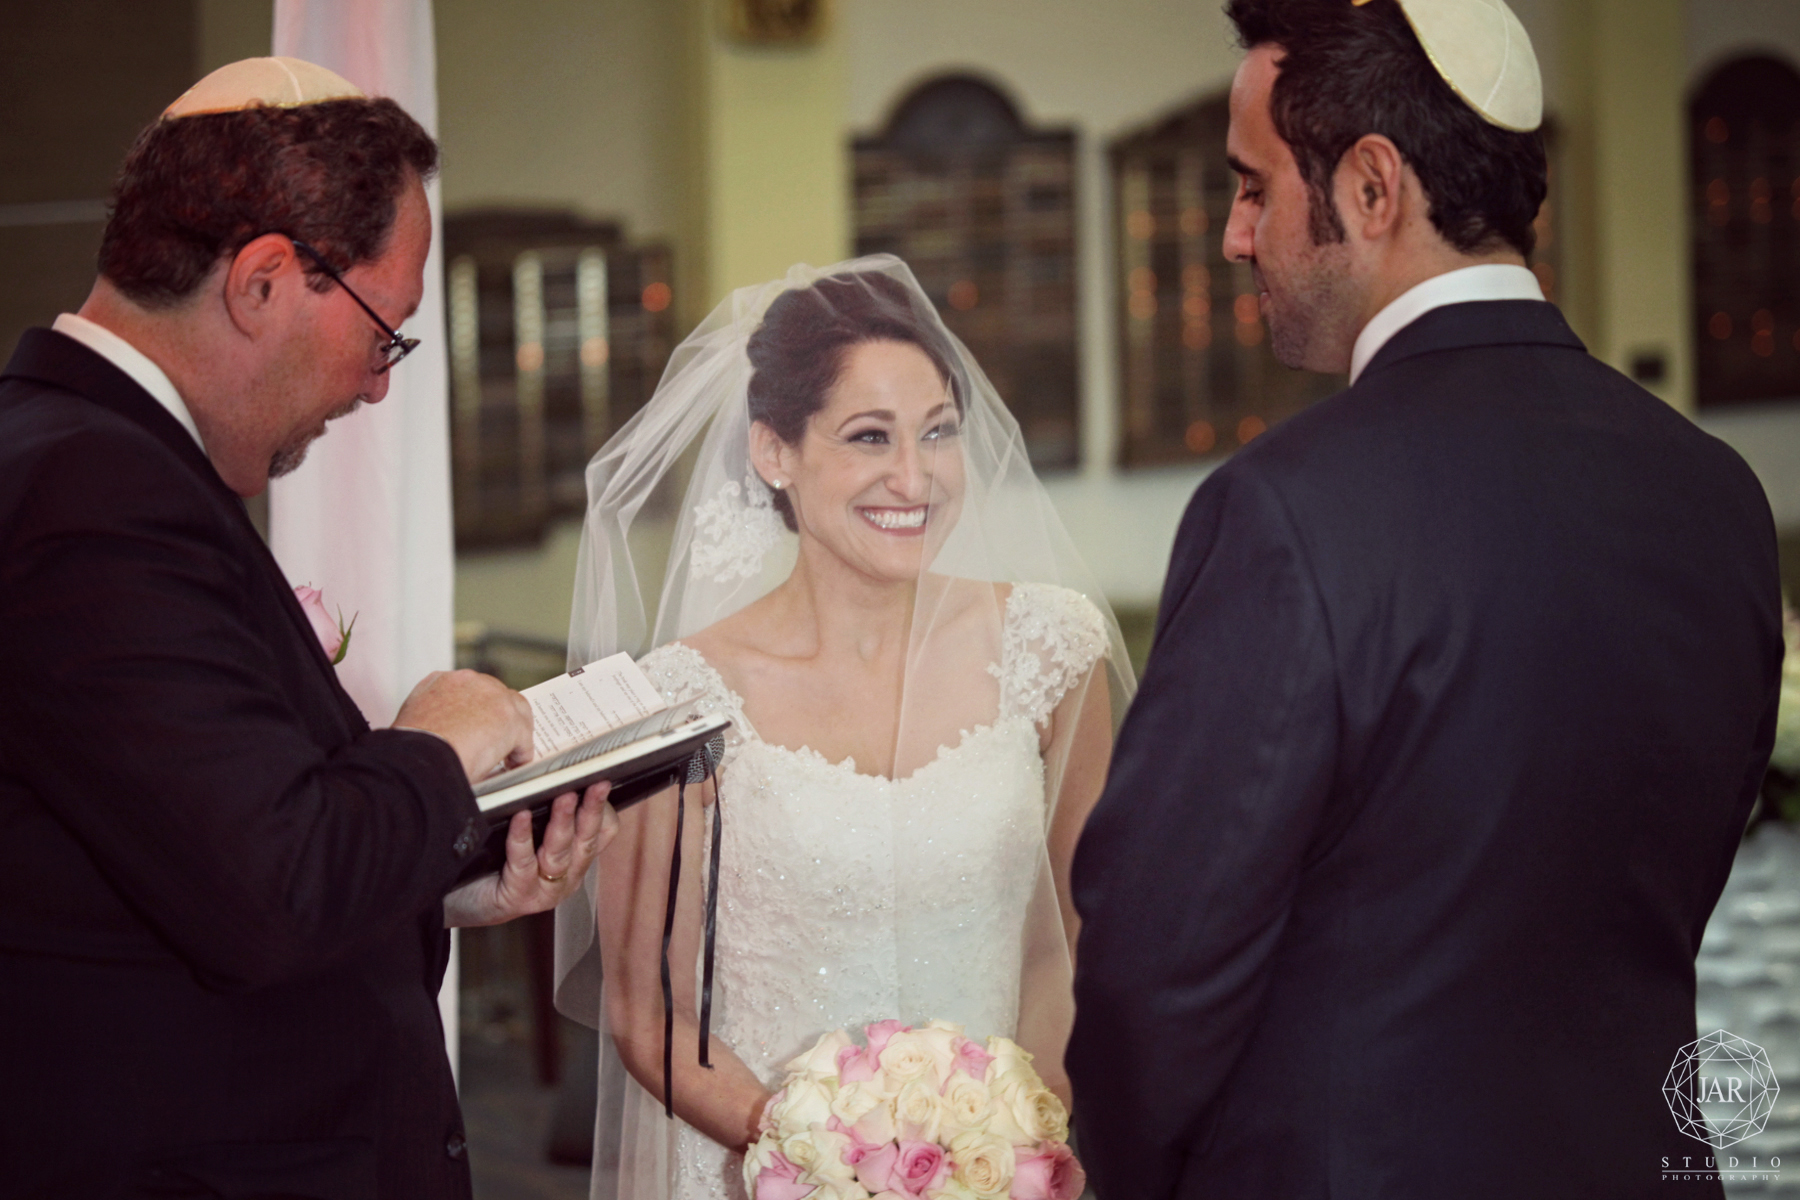 22-jewish-ceremony-wedding-photography-jarstudio-orlando.JPG